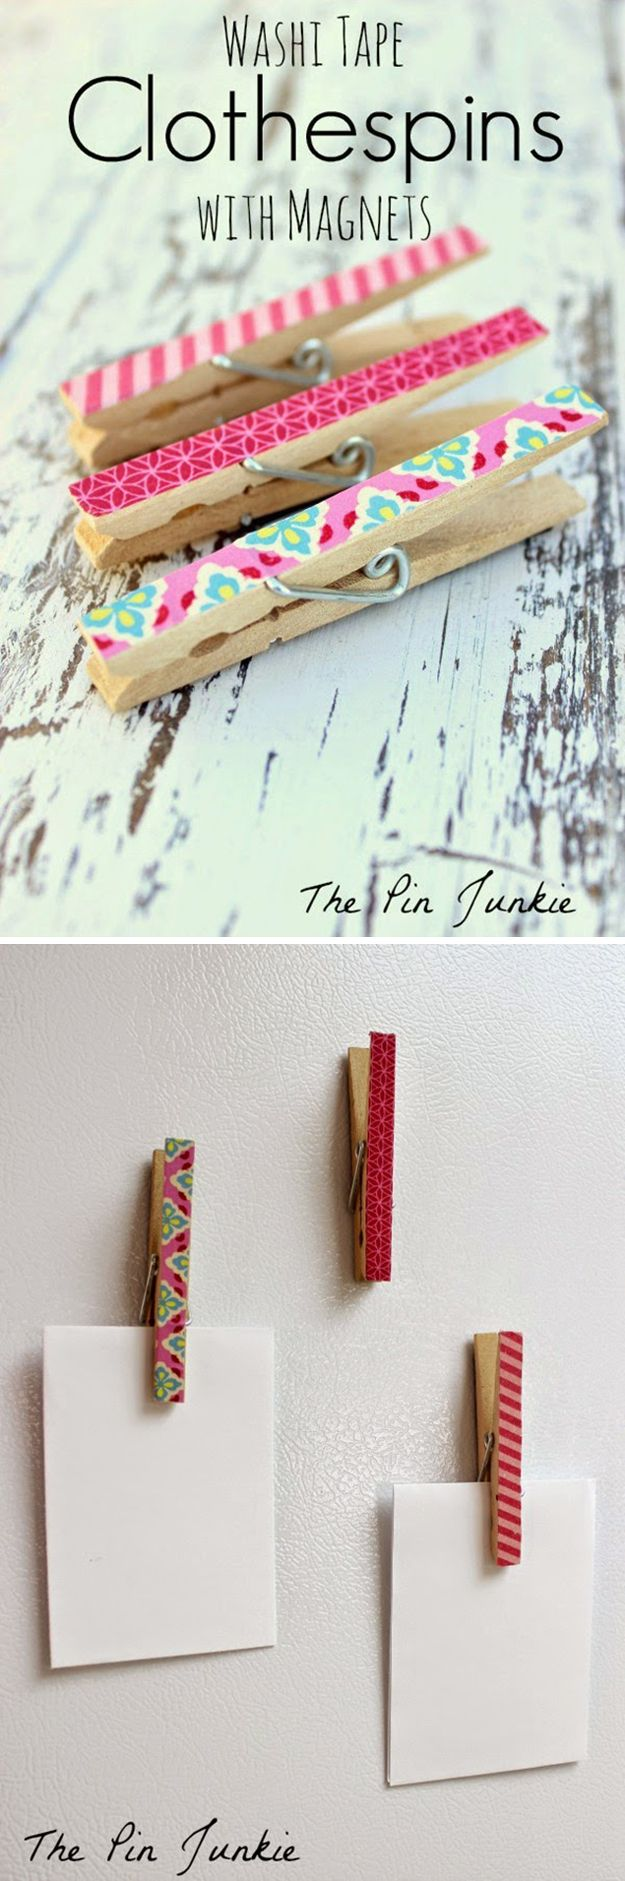 Creative Washi Tape Design | DIY Clothespin Magnets by DIY Ready at http://diyready.com/100-creative-ways-to-use-washi-tape/: